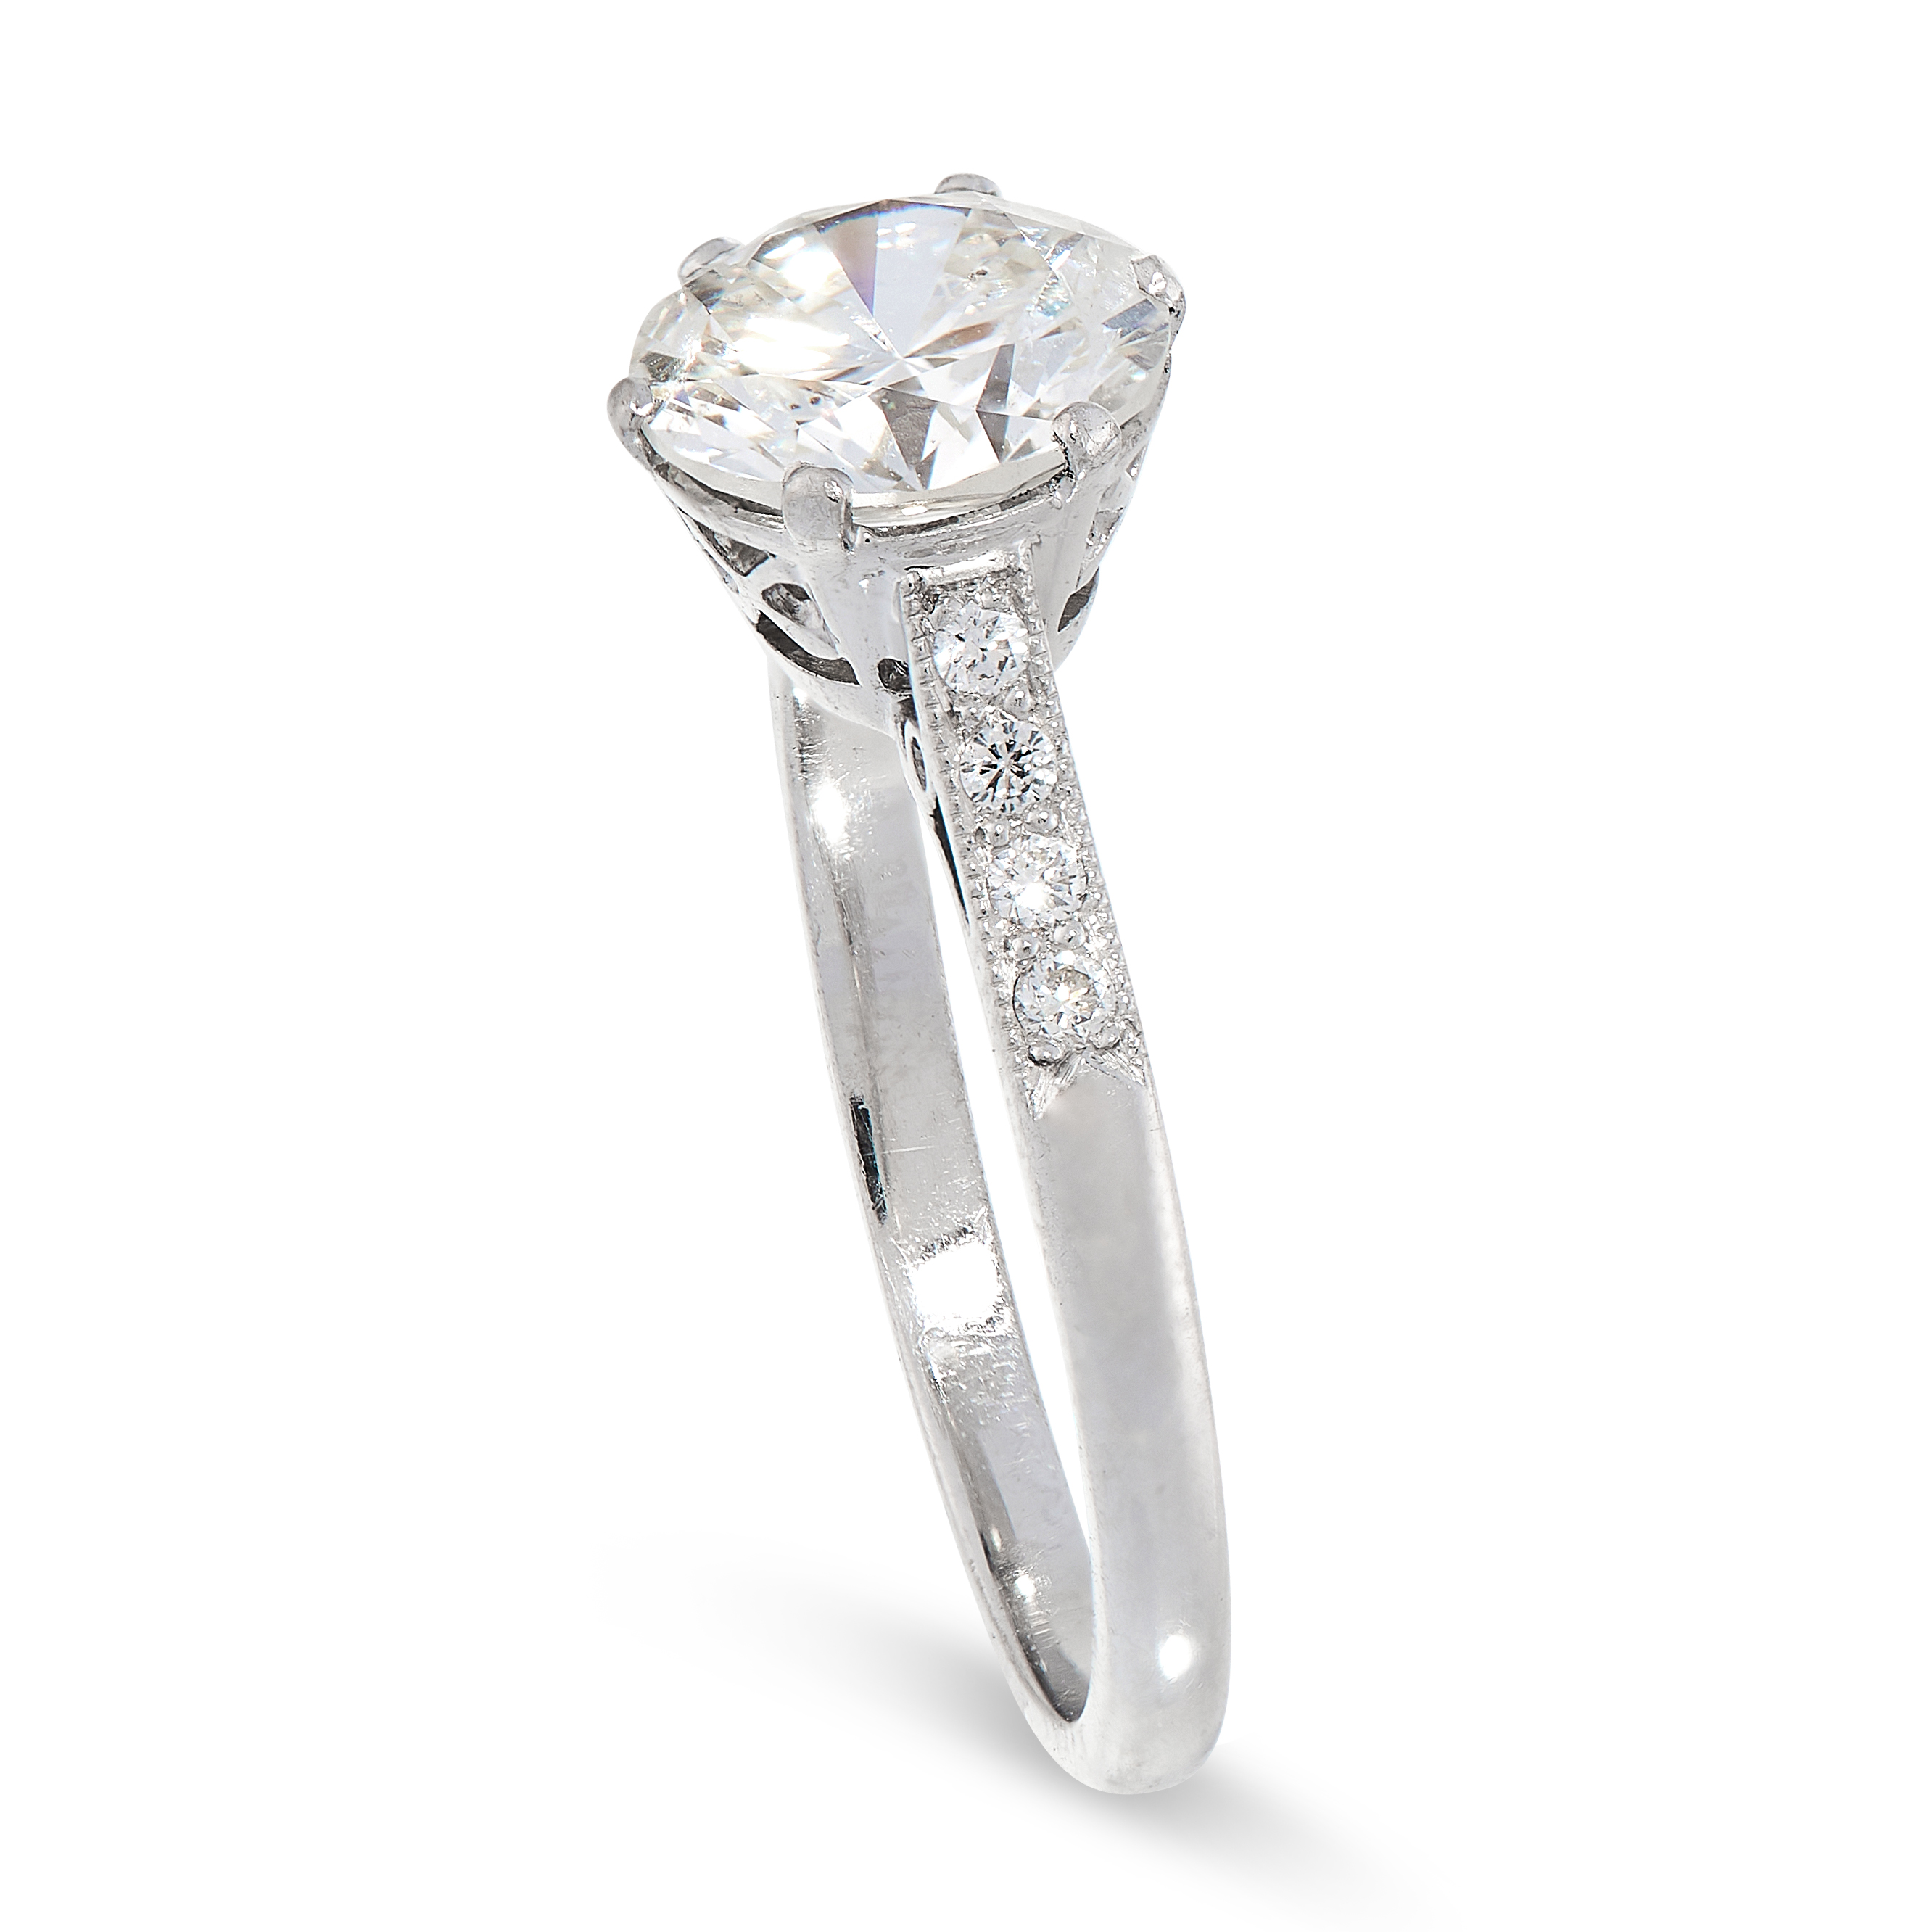 DIAMOND SOLITAIRE RING comprising of a round cut diamond of 1.76 carats with further round cut - Image 2 of 2